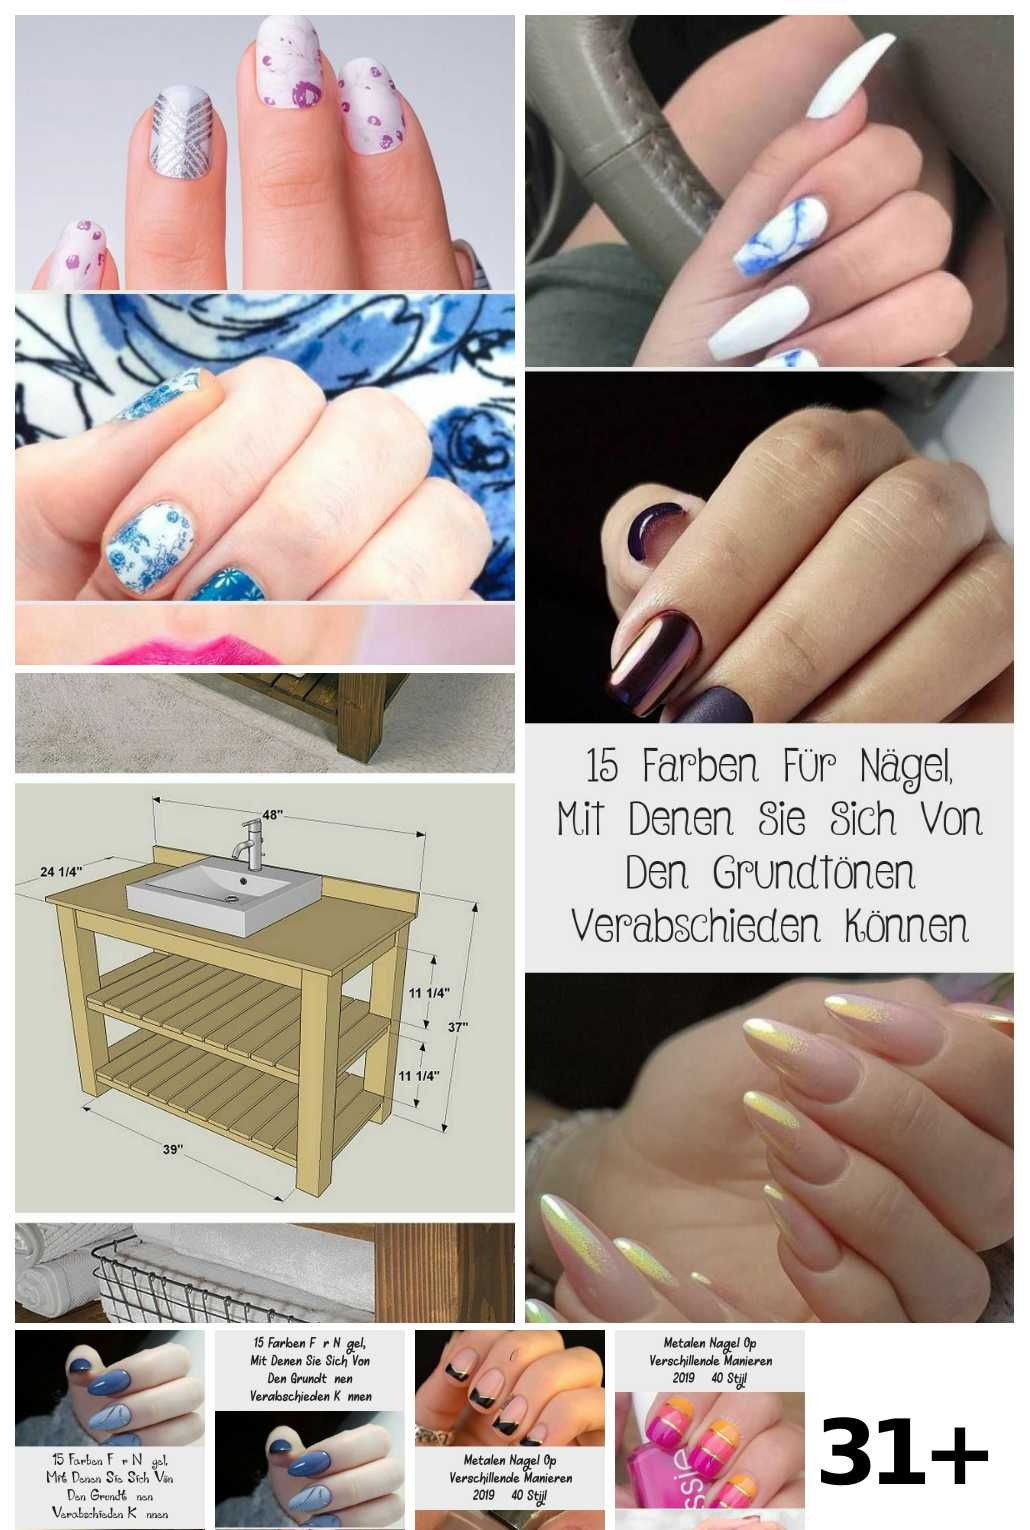 31 Witte Nagel Ideas In 2020 Nail Designs Nails Design